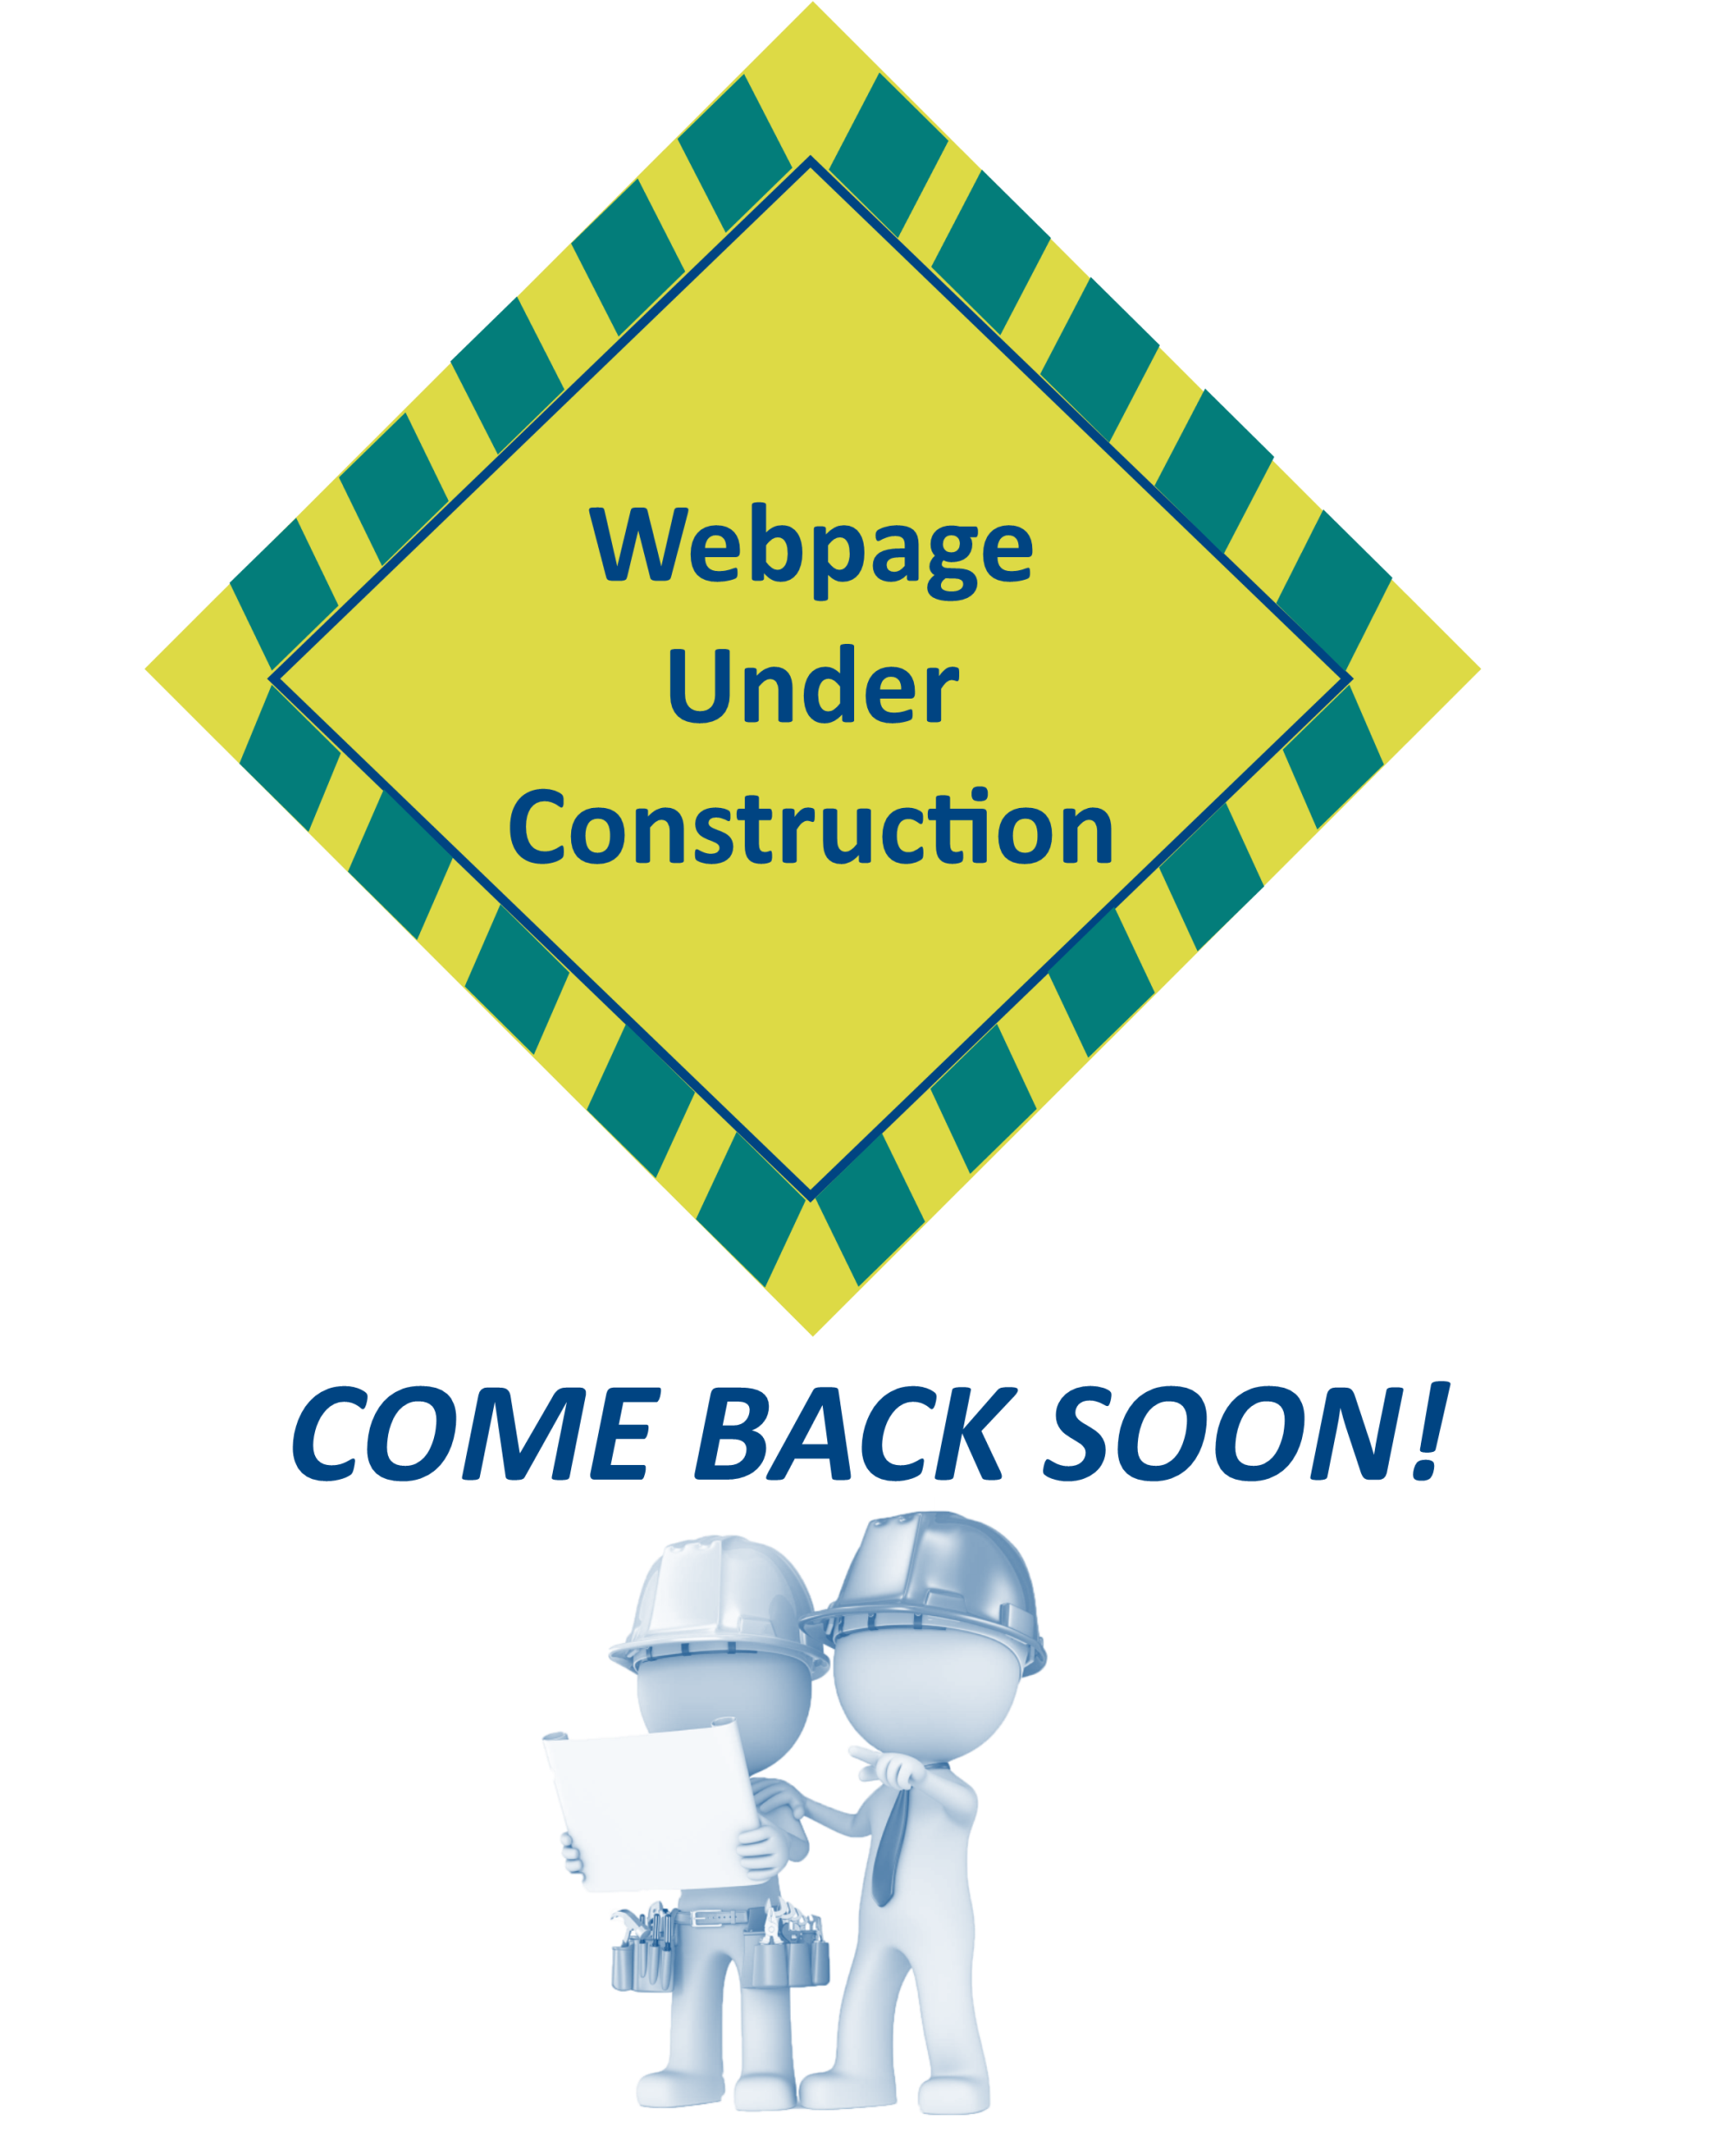 Webpage Under Construction